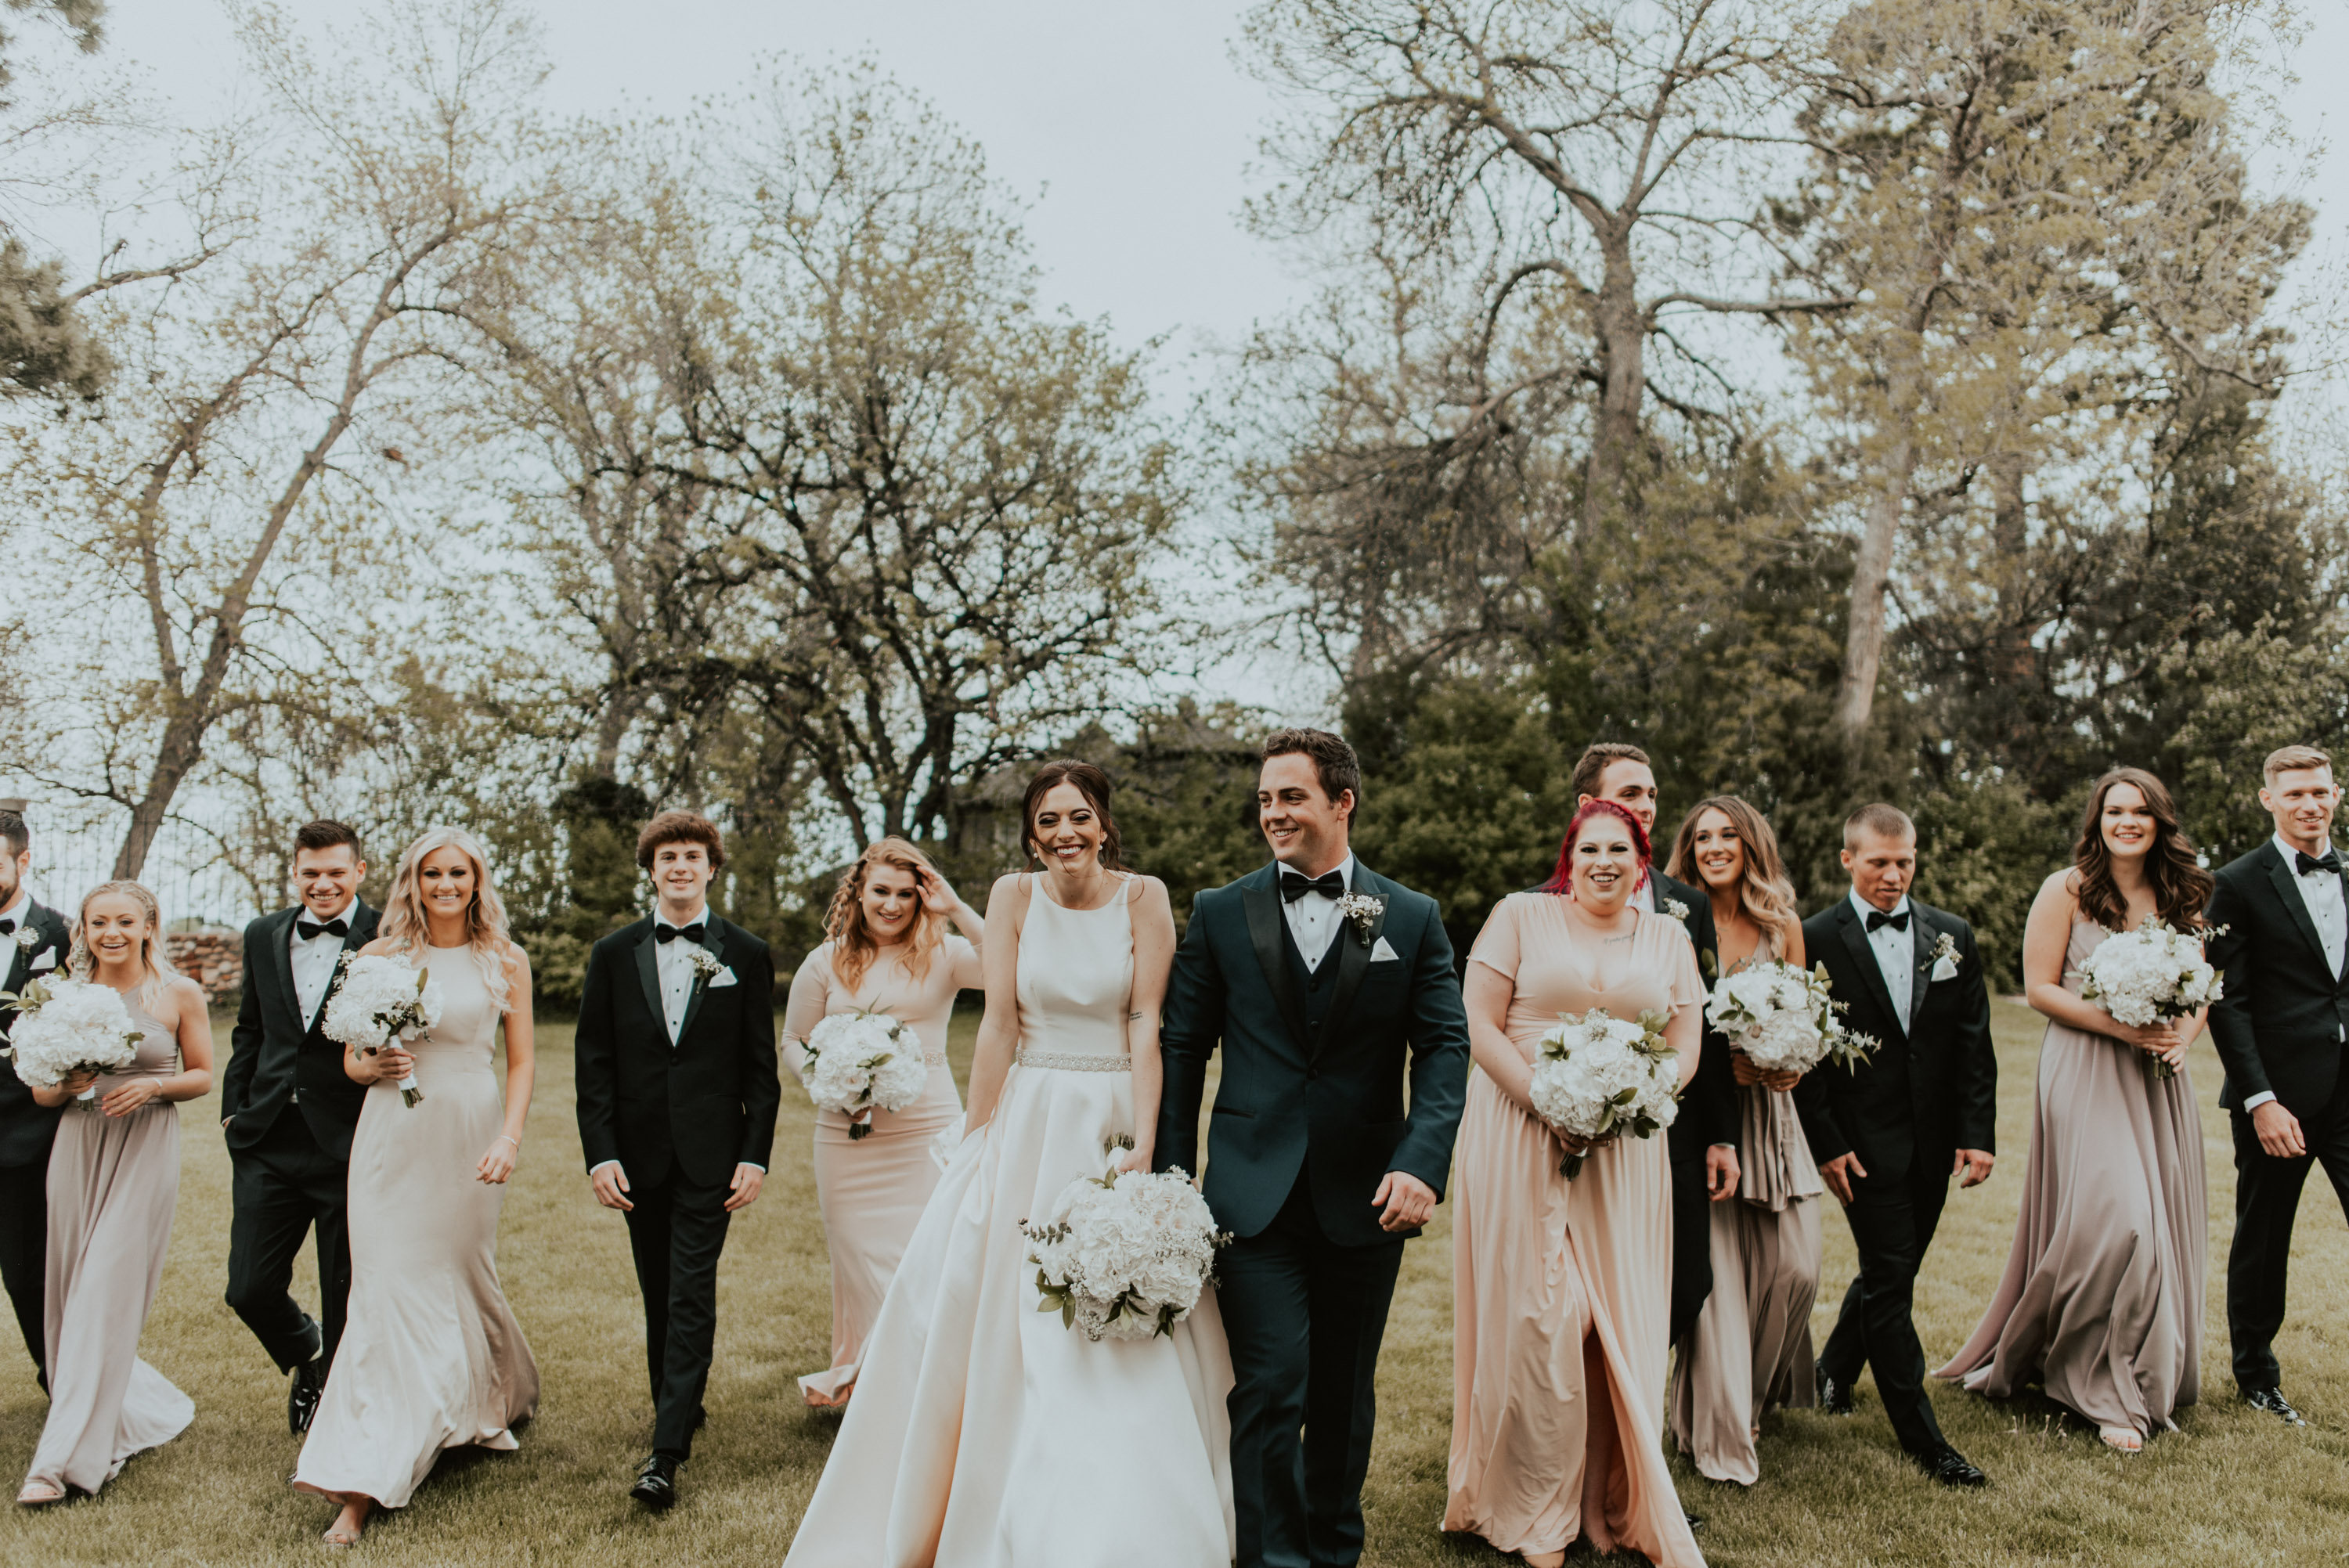 devyn+coleton tied the knot at the highlands ranch mansion in highlands ranch colorado on the perfect spring day in may!